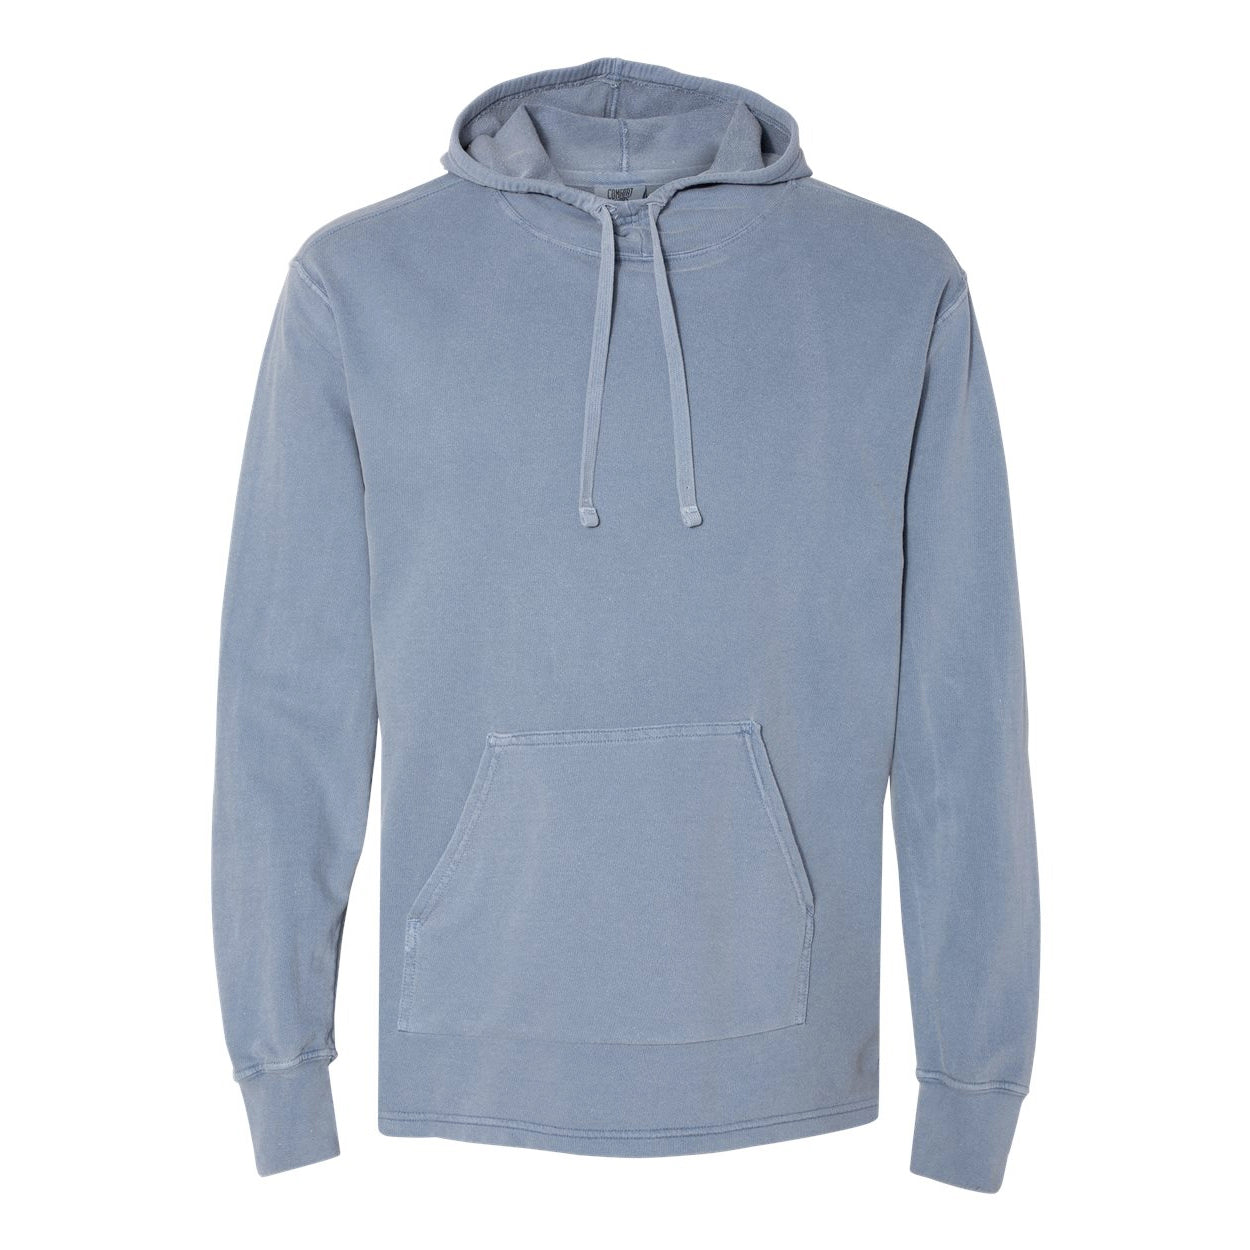 RHINO PIGMENT DYED HEAVY JERSEY SUBA HOODIE - WASHED DENIM  Men's Knit By Robert James